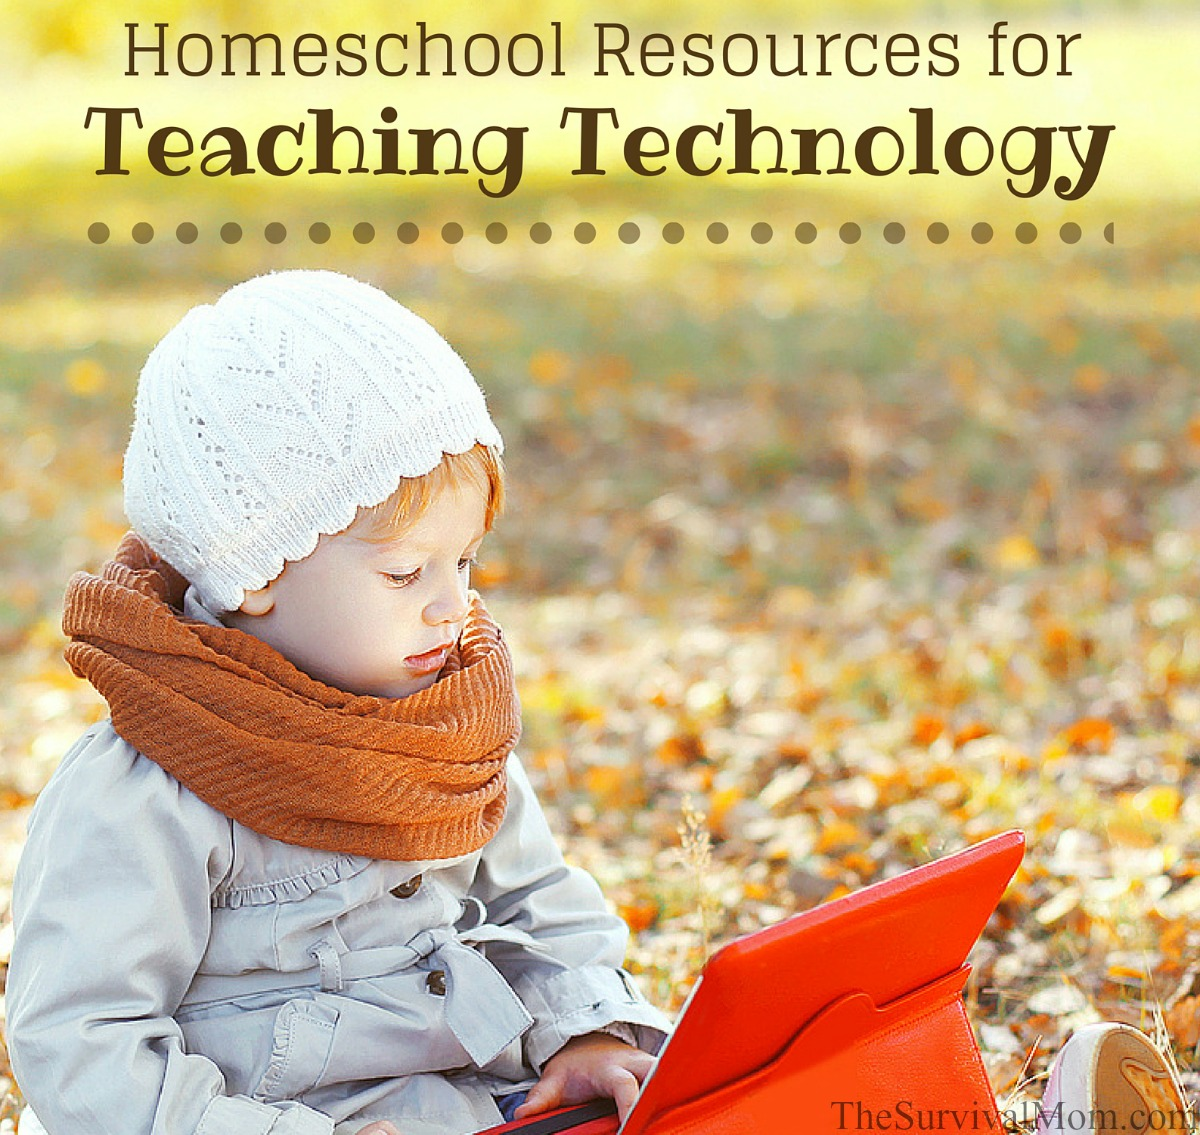 Homeschool Resources for Teaching Technology via The Survival Mom